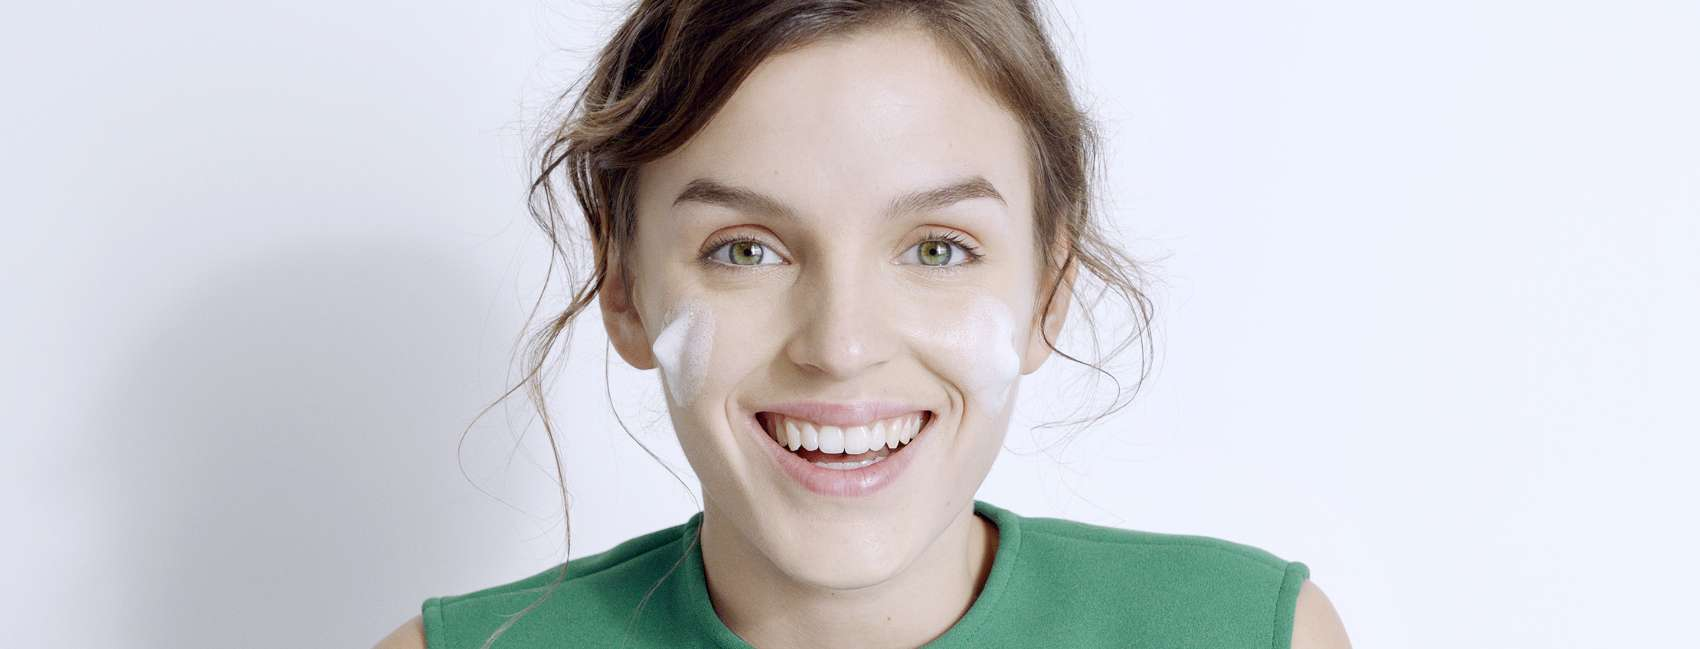 Girl in green dress with foamy face wash on her cheeks